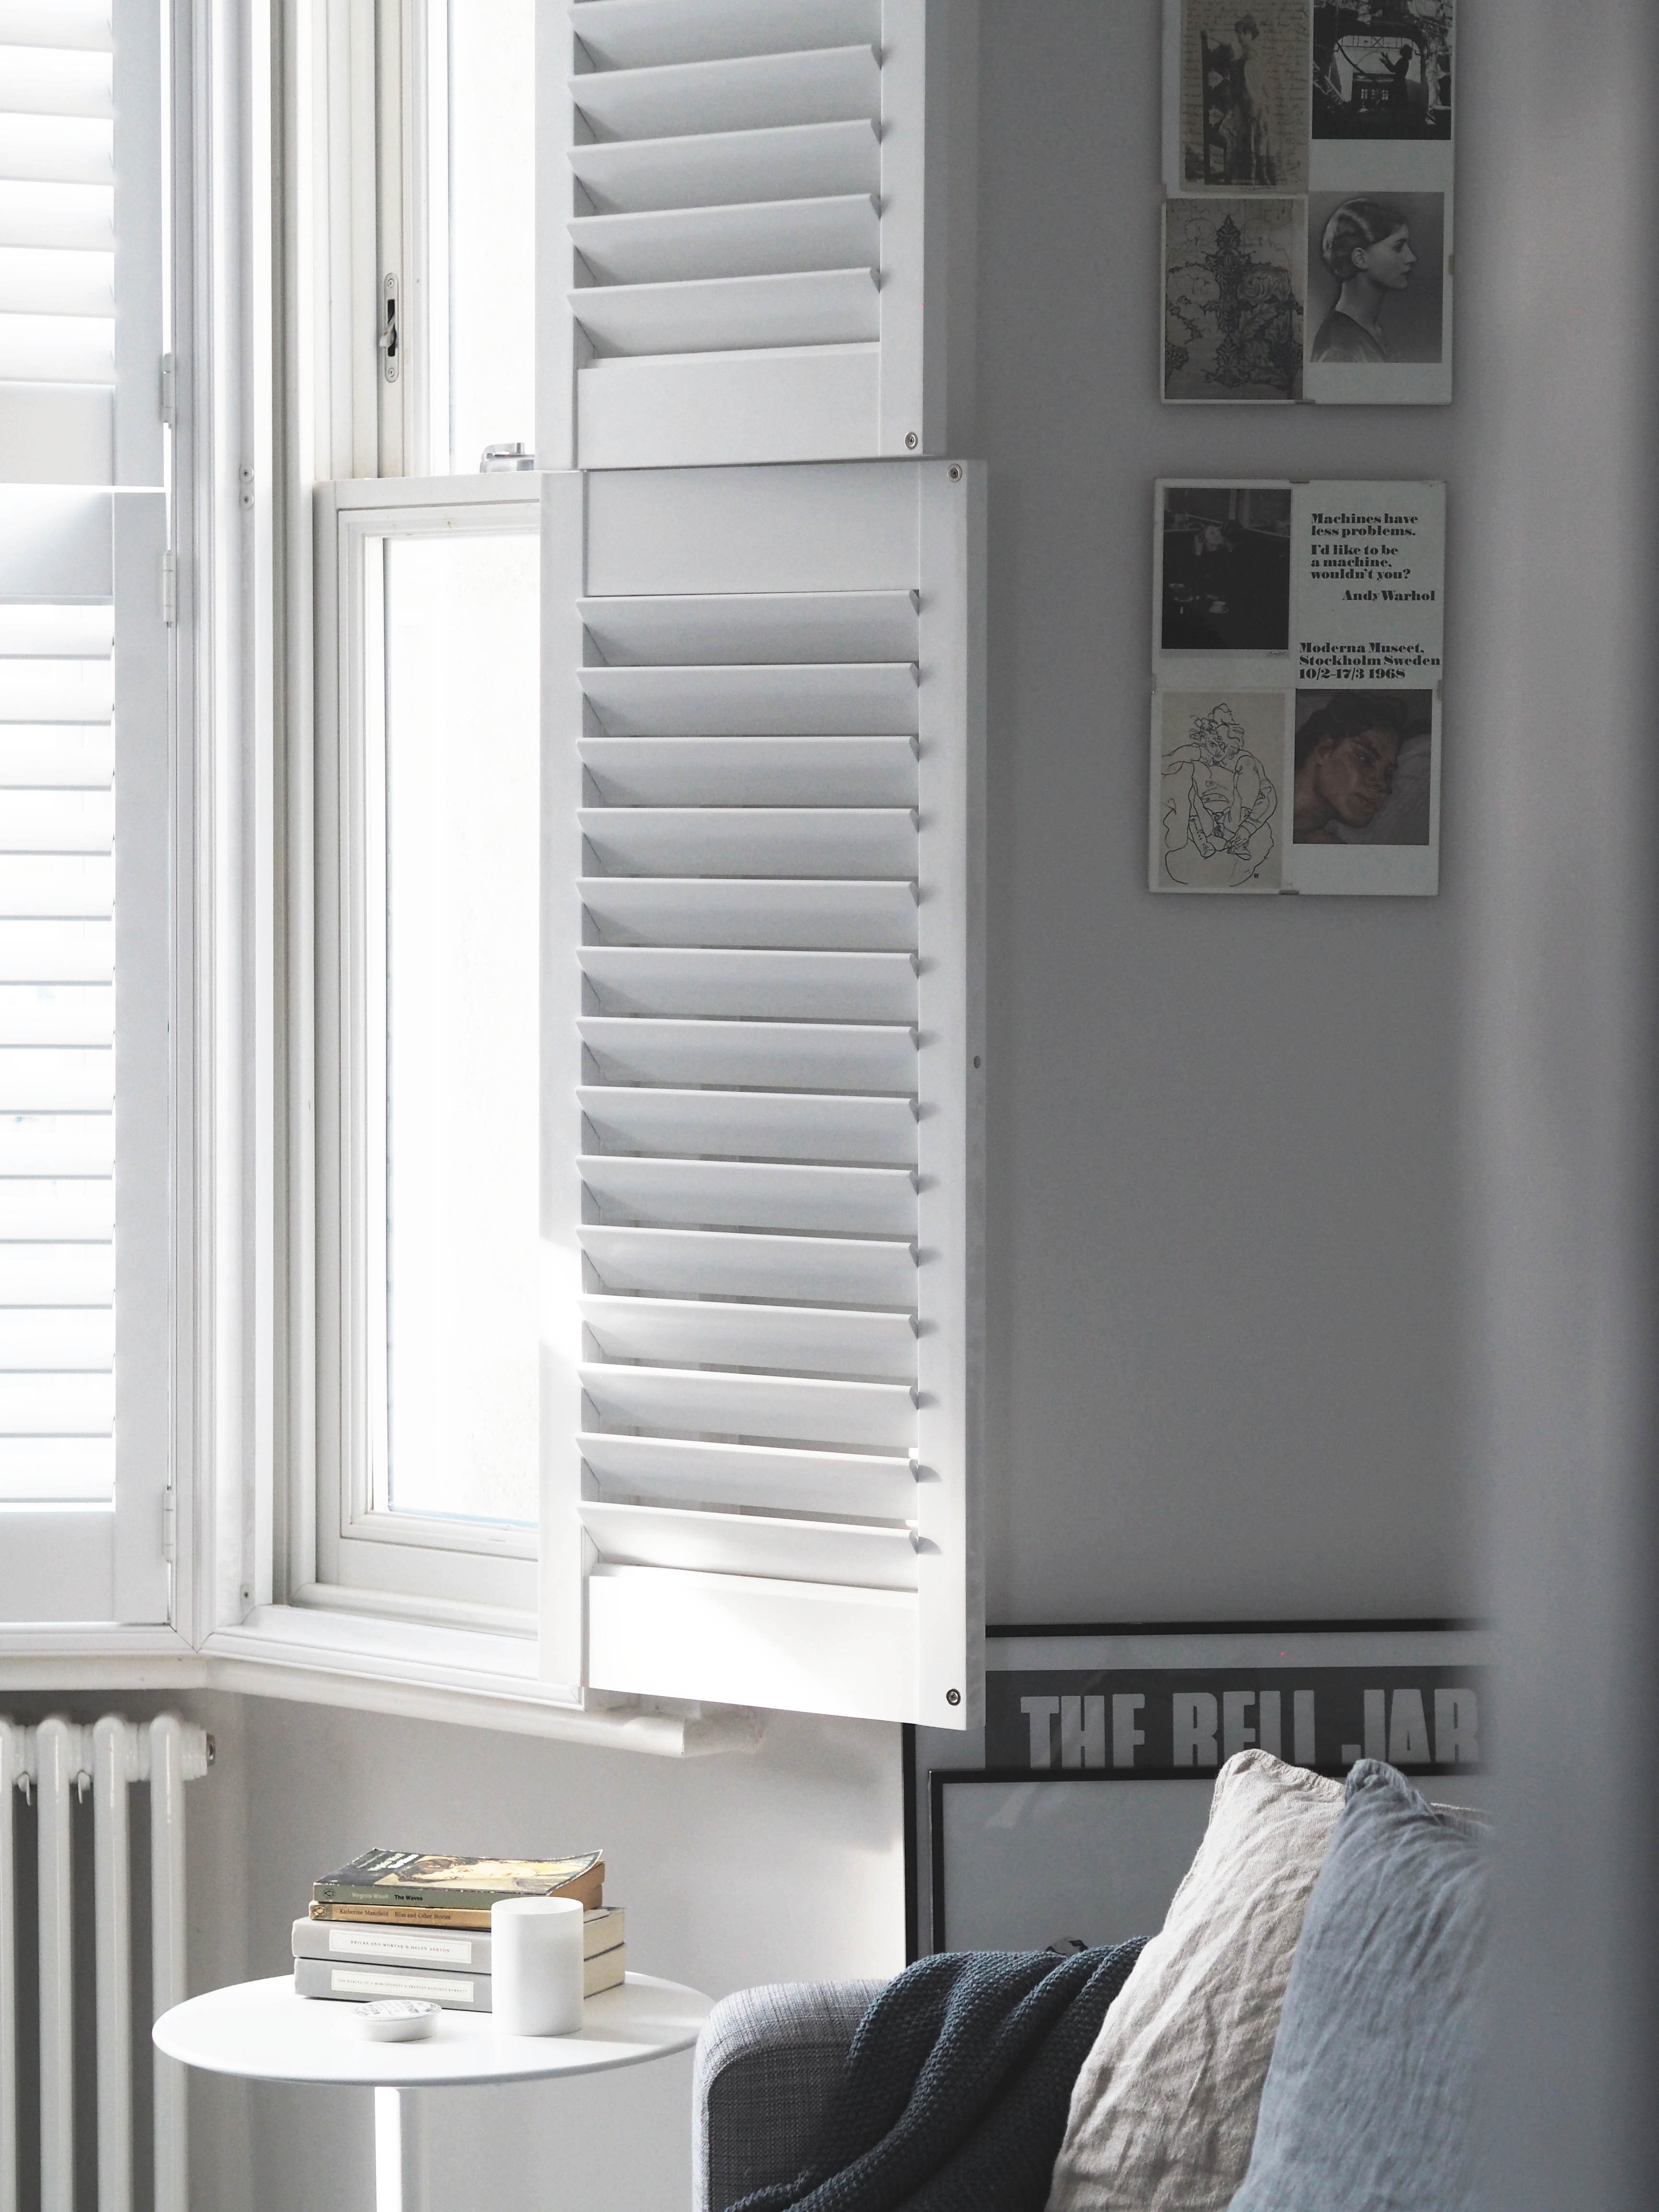 sliding in glass kitchen reviews contemporary blinds cellular vertical for wooden full door problems french of patio between the built with window treatments doors shades size